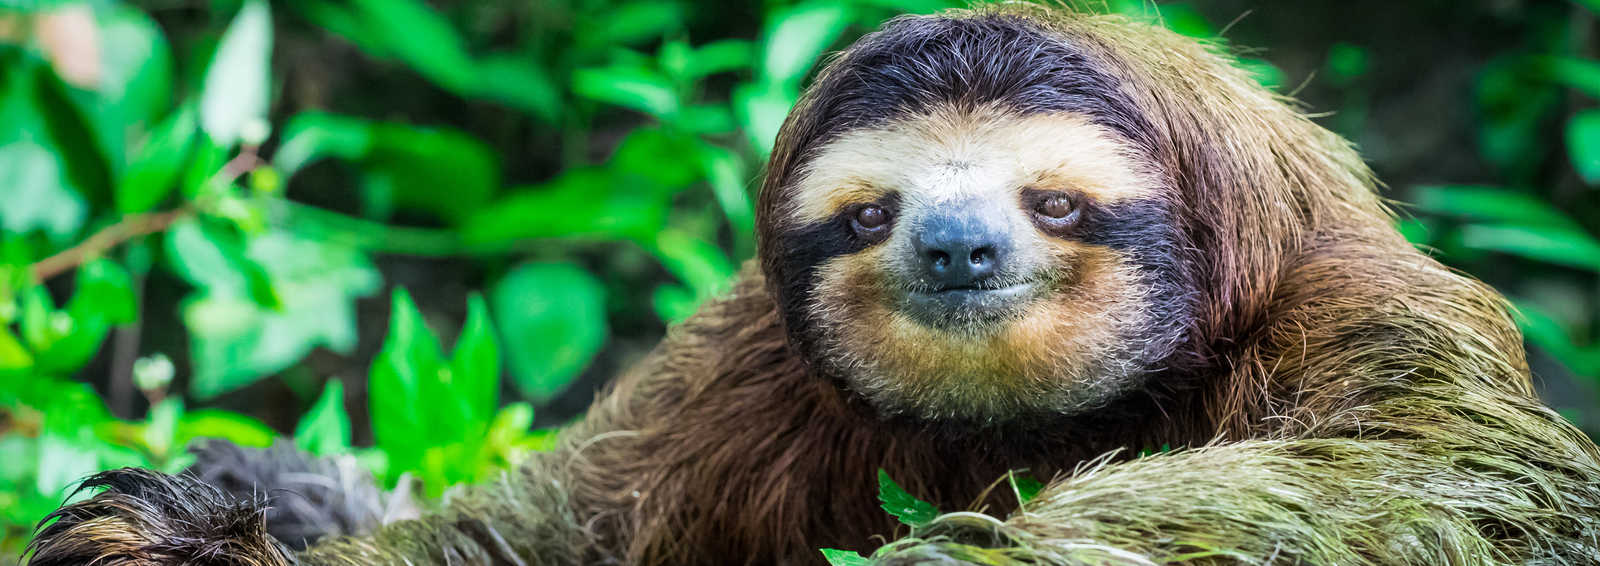 A sloth stops to pose for a photograph in Costa Rica.